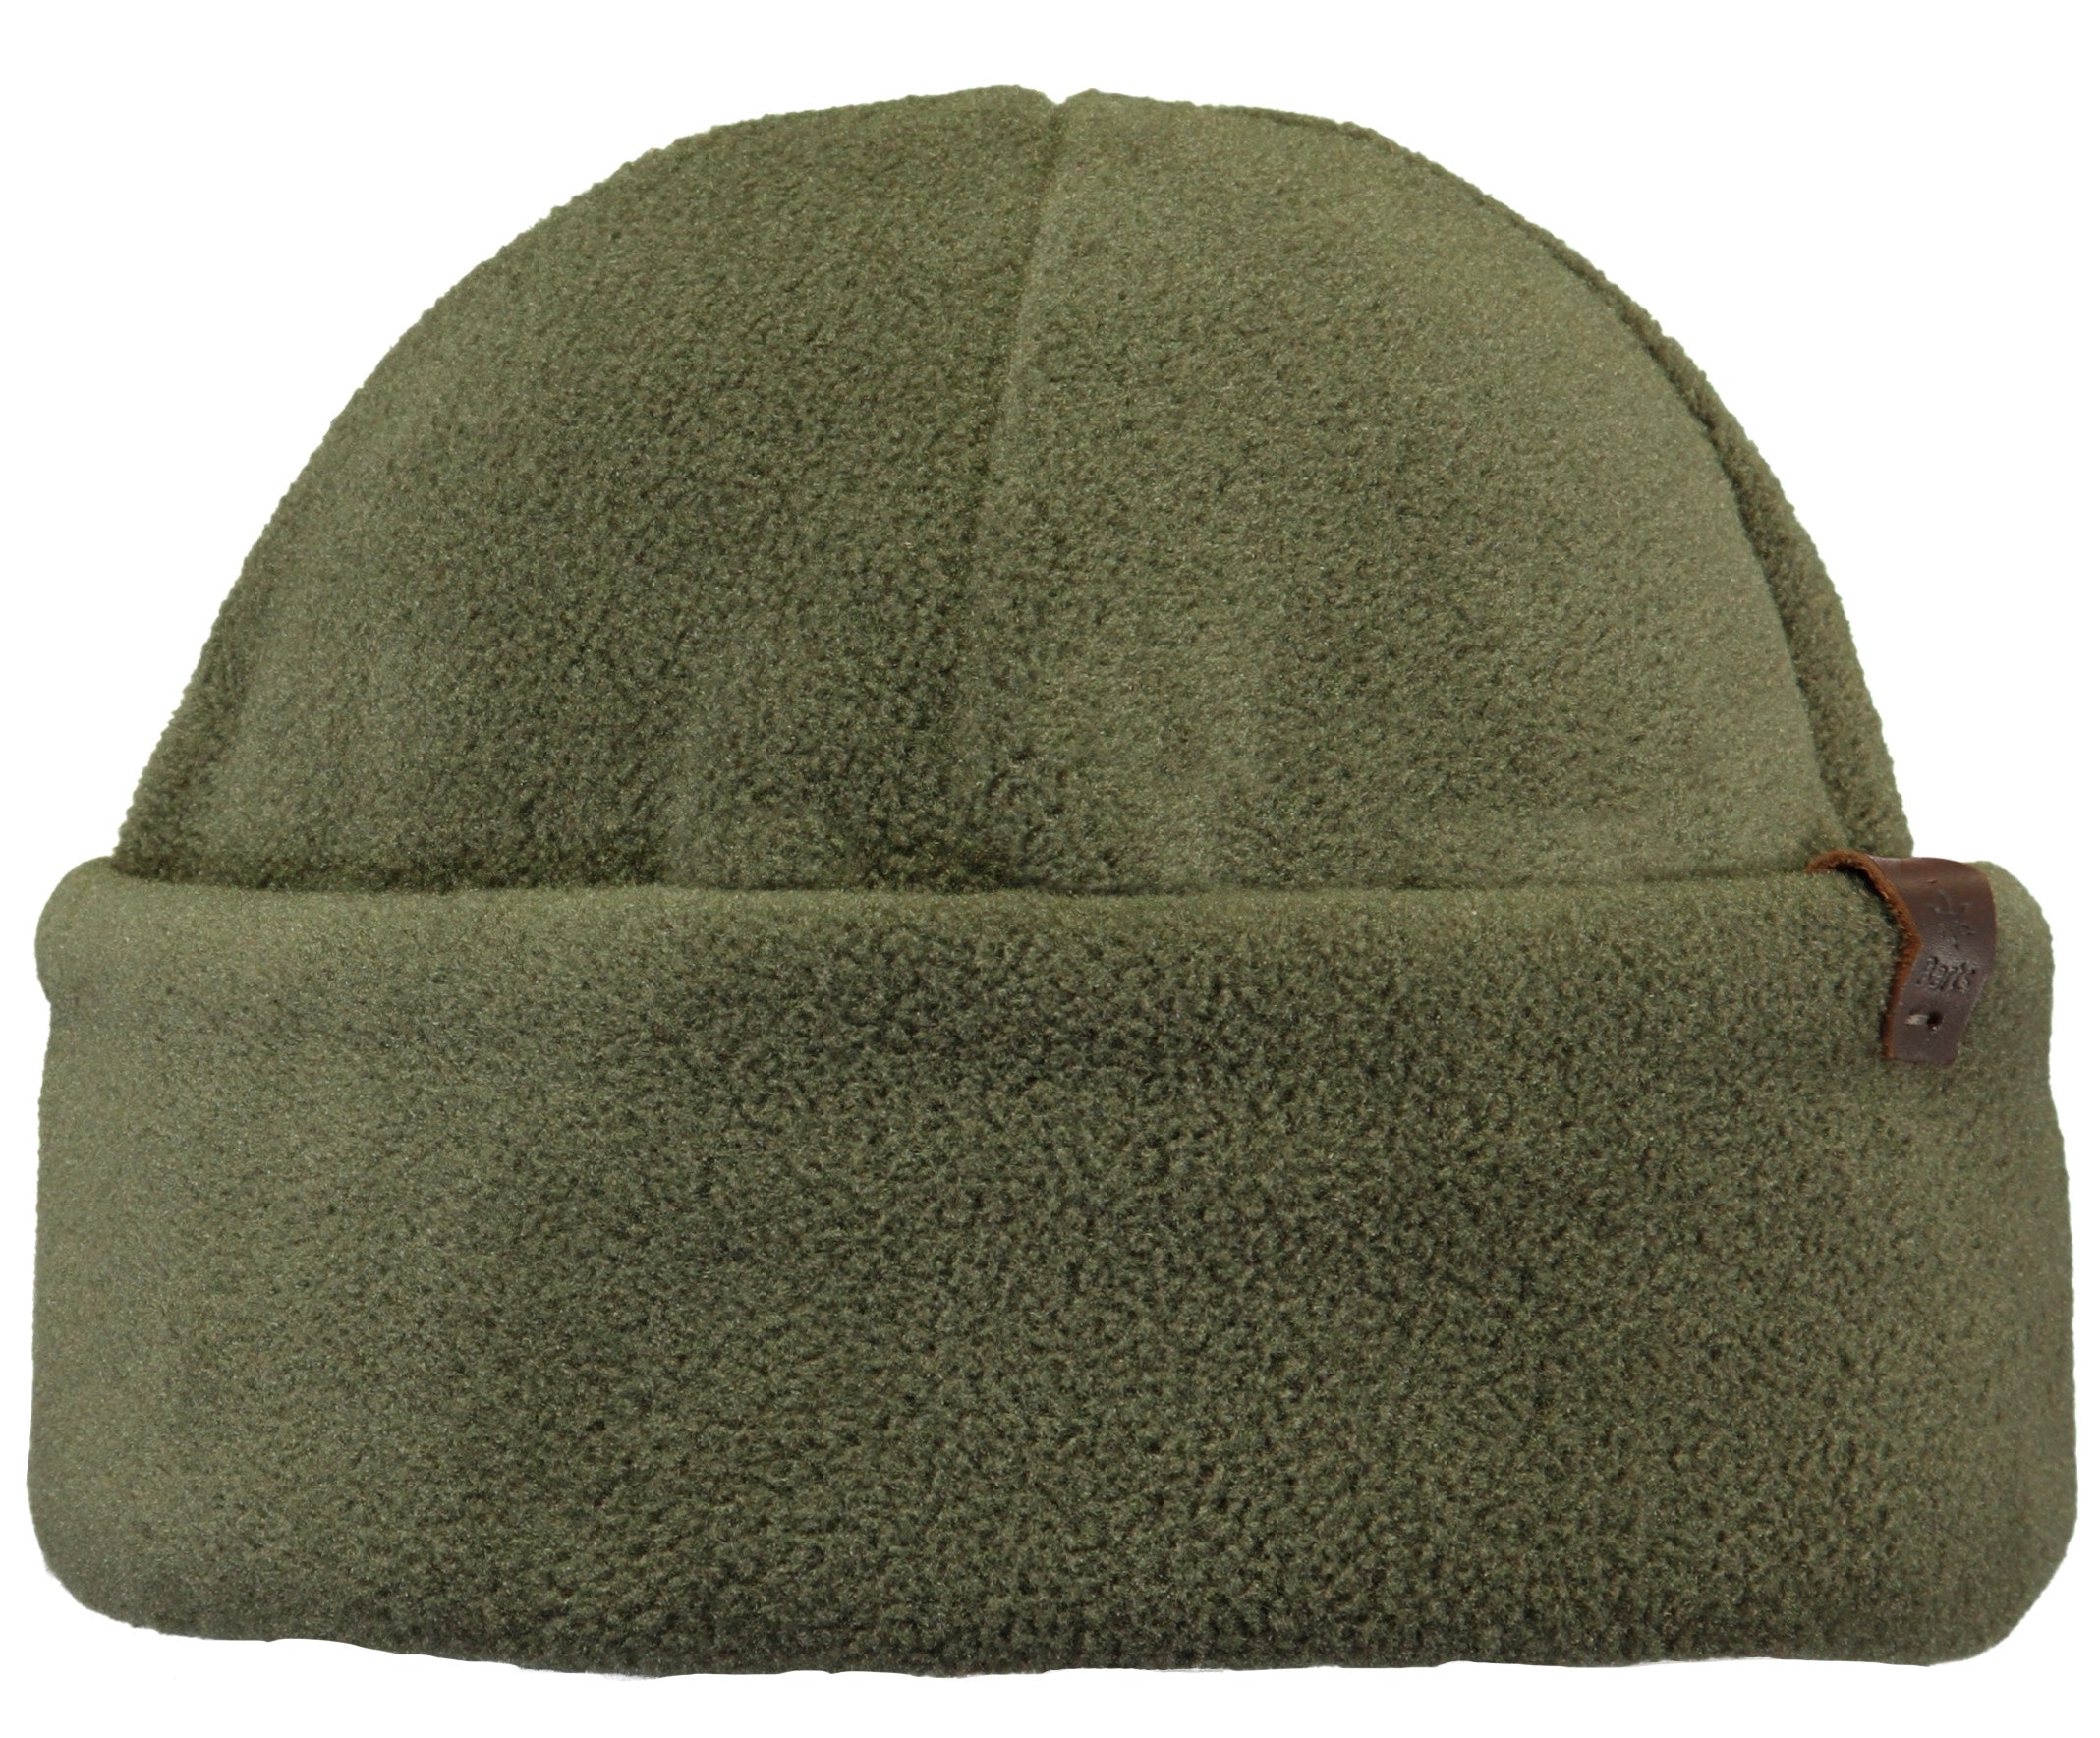 Barts Venture Turnup Hat in Army Green